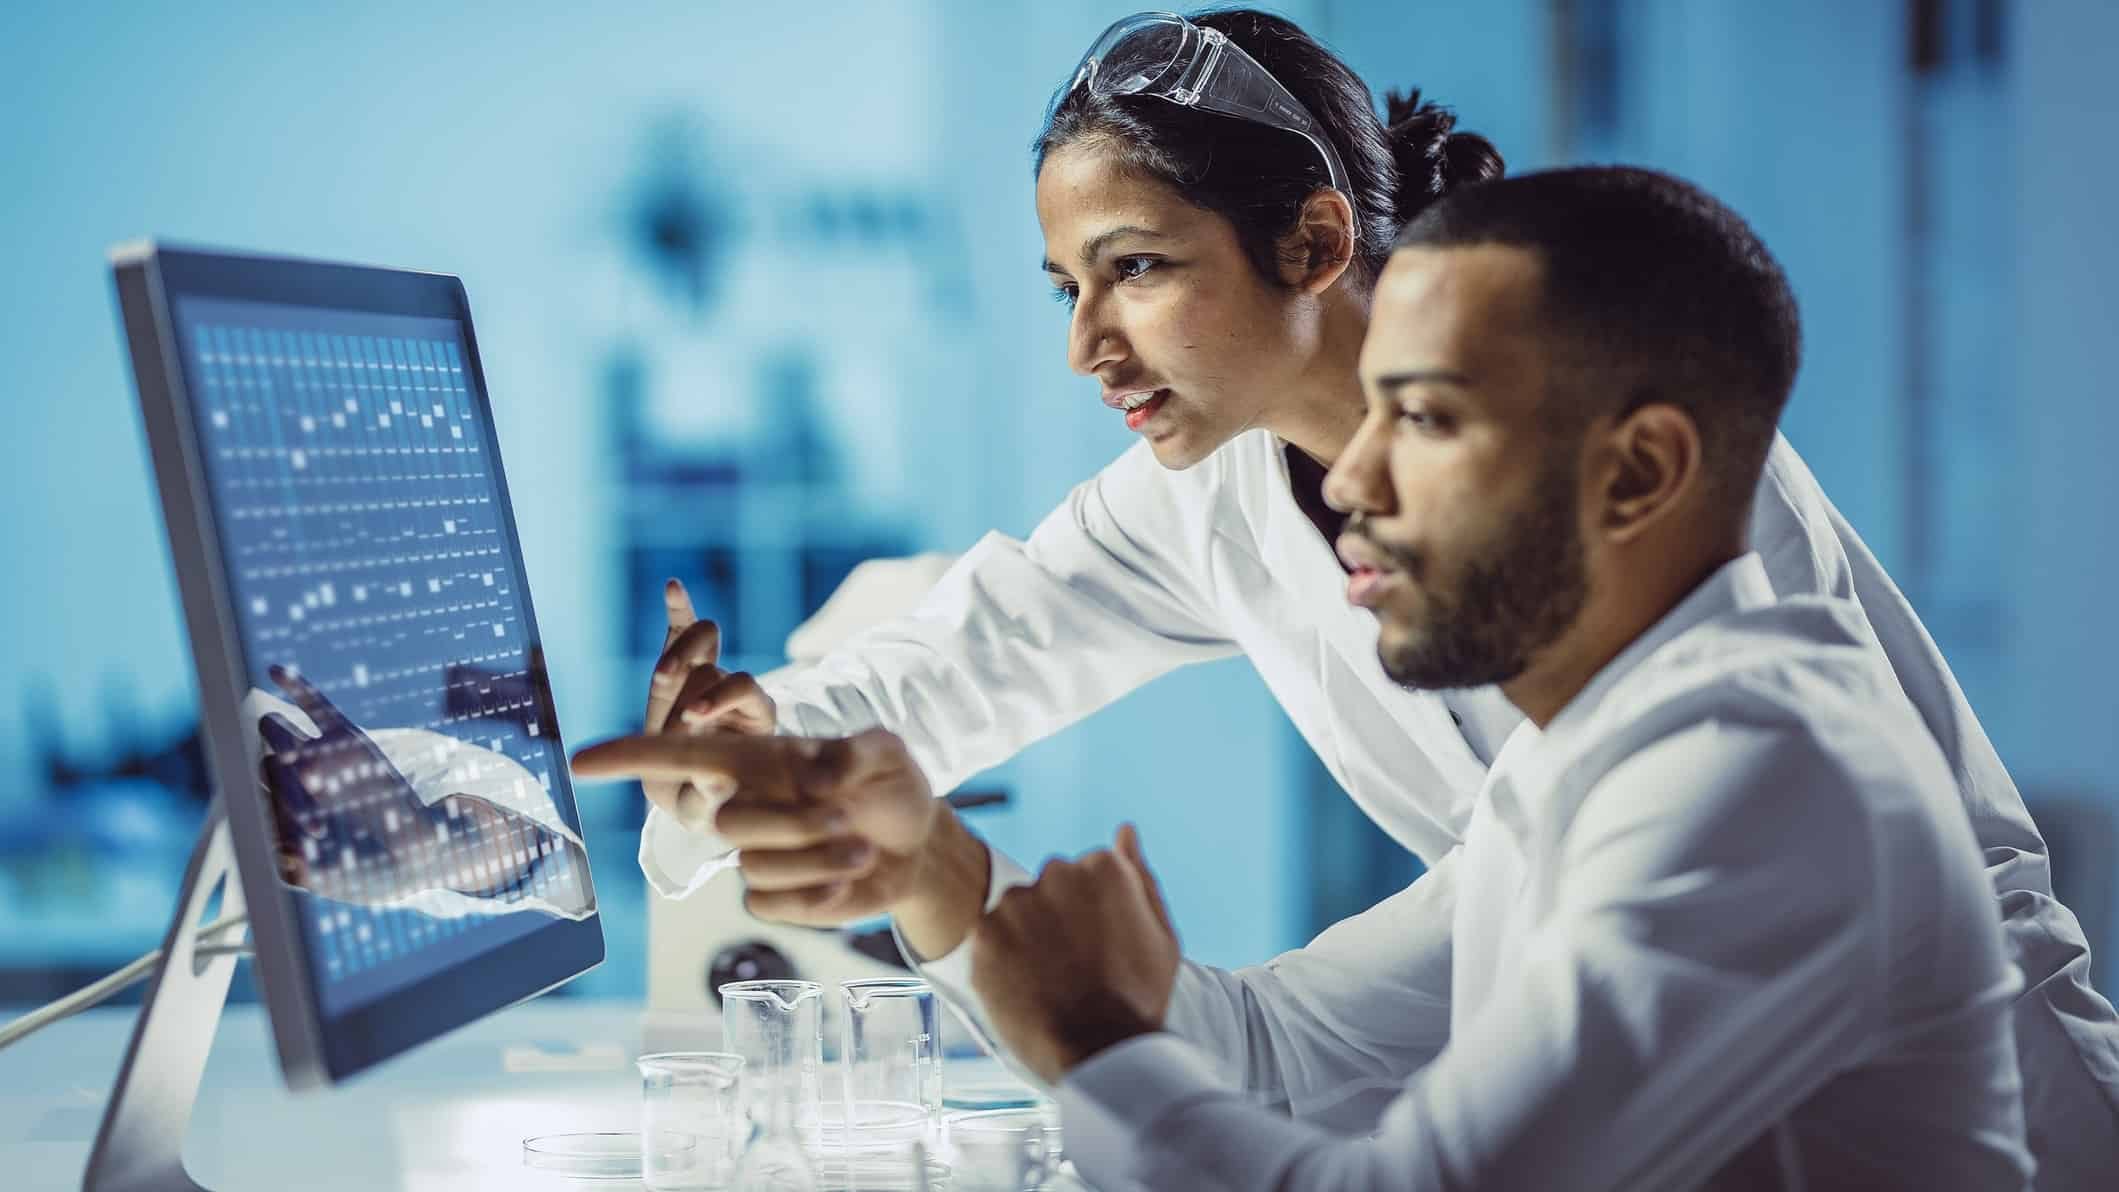 Scientists working on a screen in laboratory